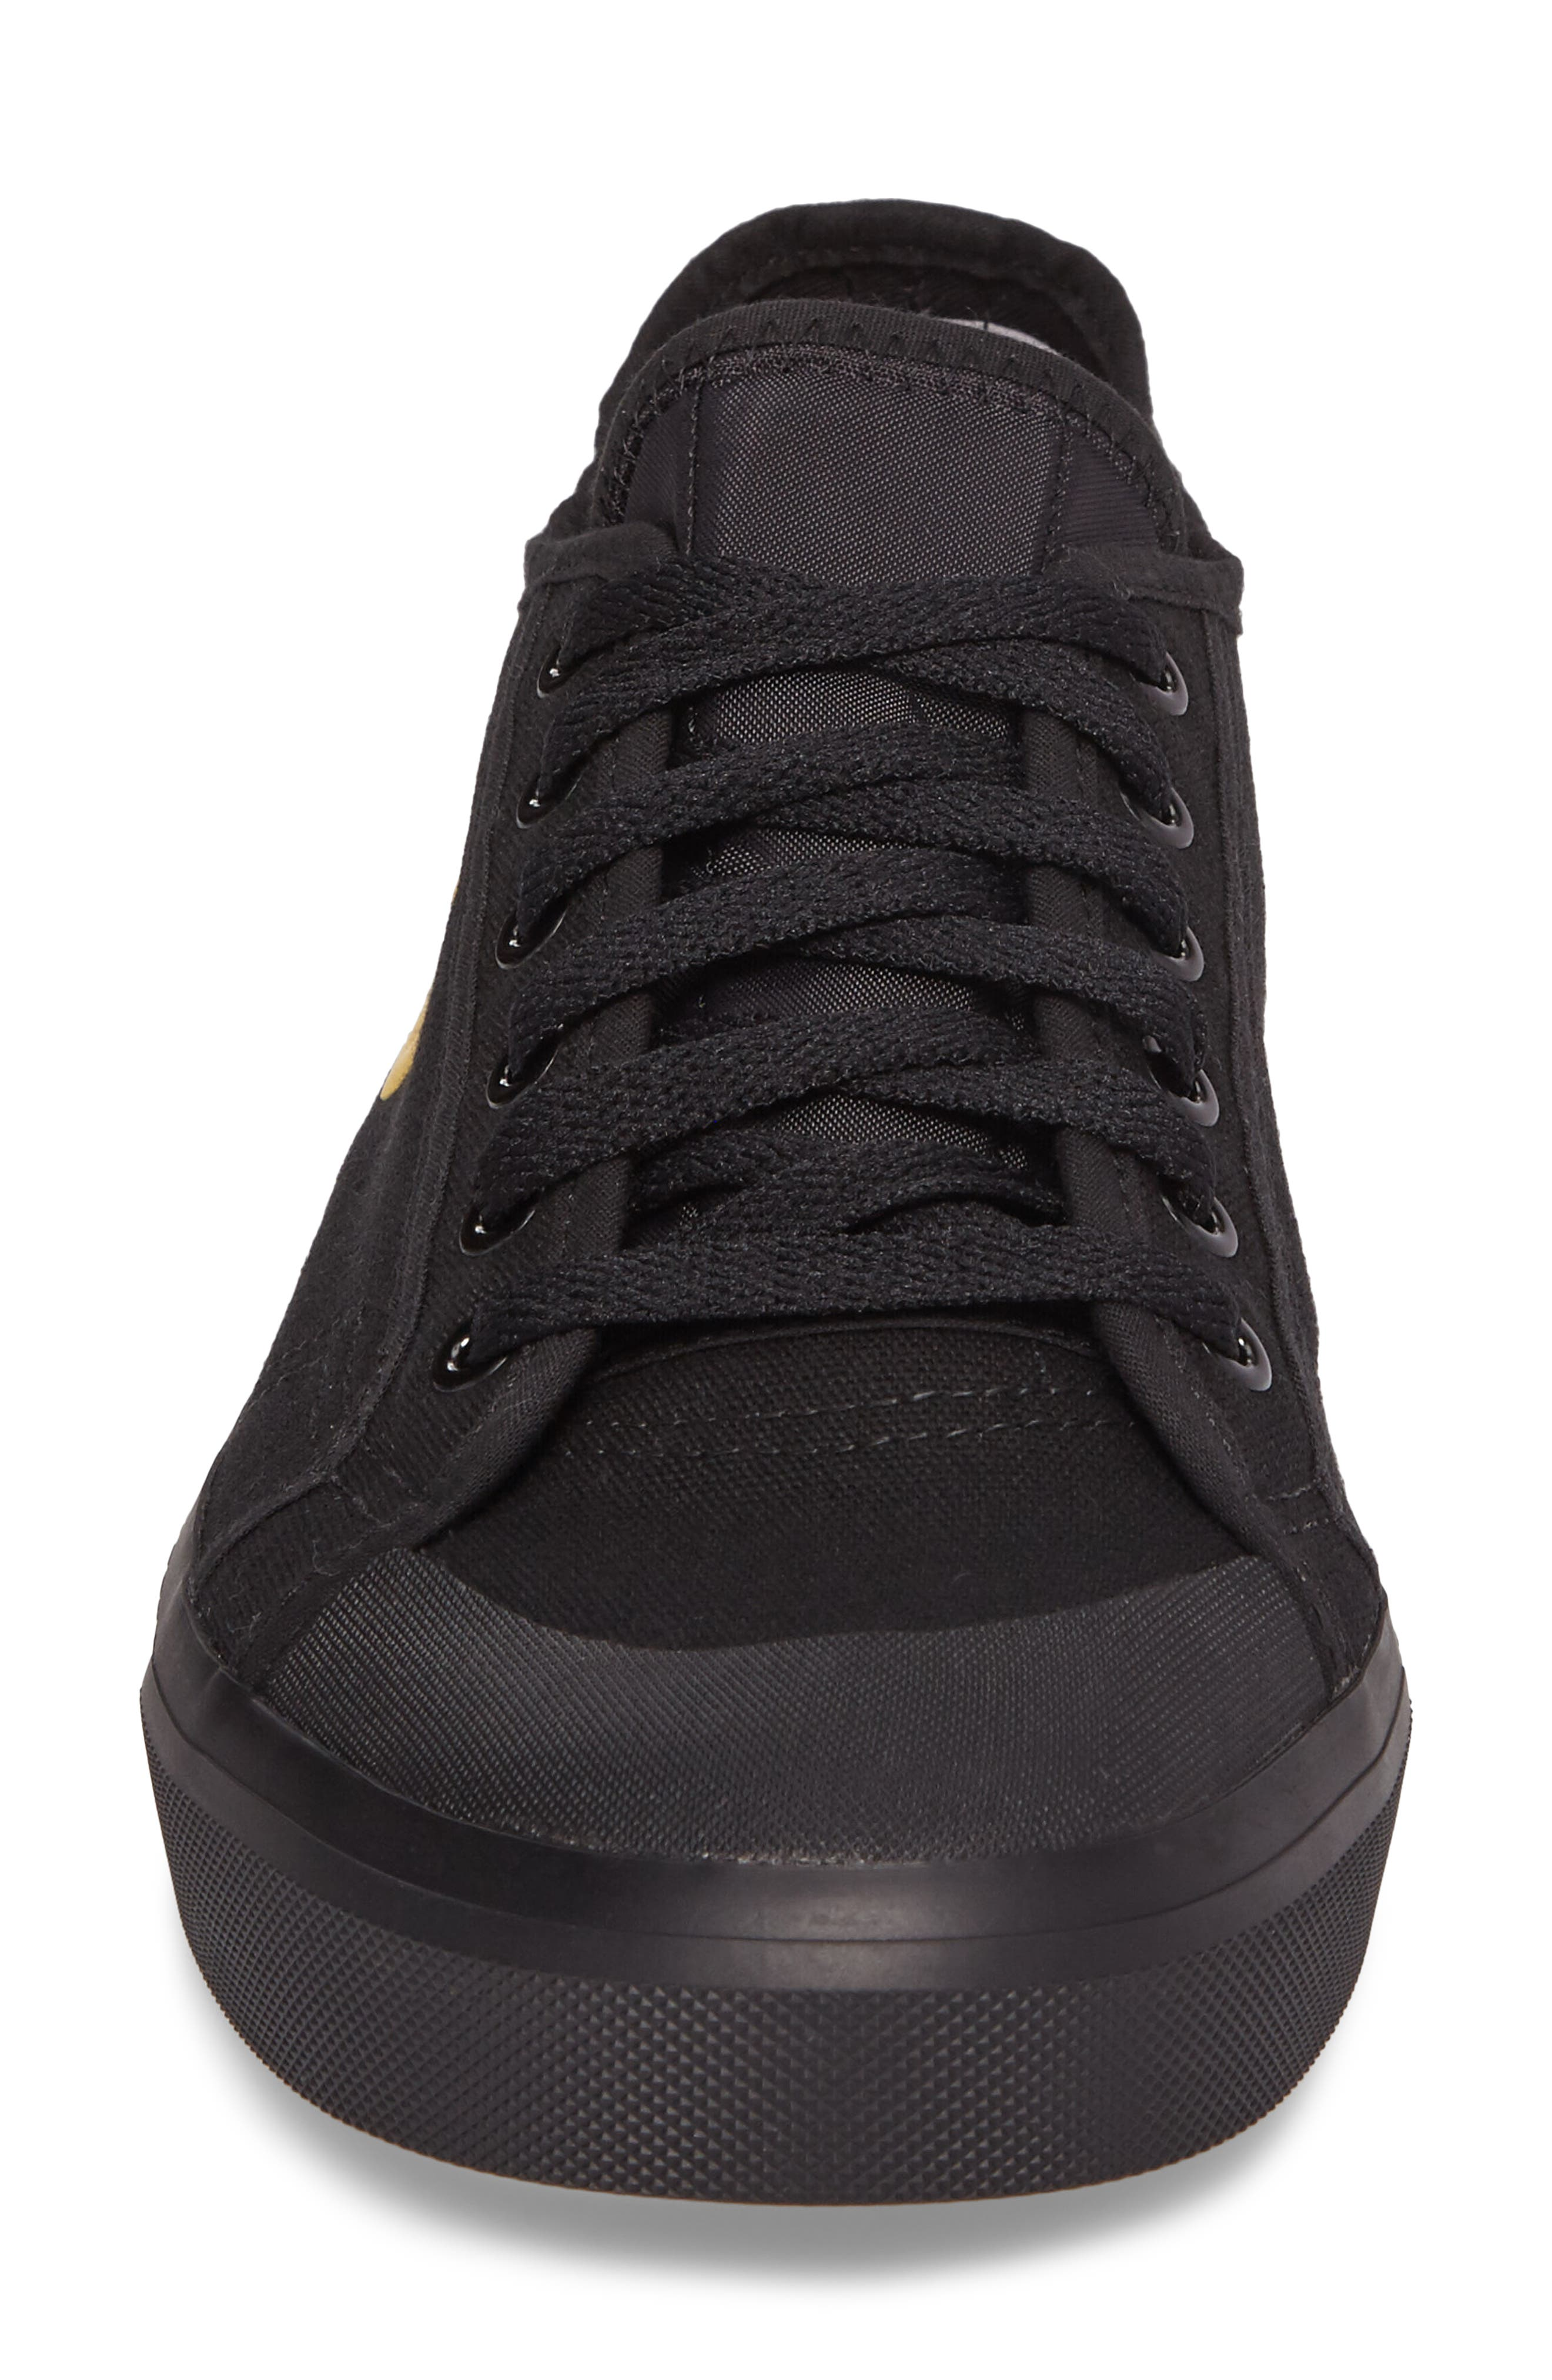 adidas by Raf Simons Spirit Low Top Sneaker,                             Alternate thumbnail 4, color,                             001